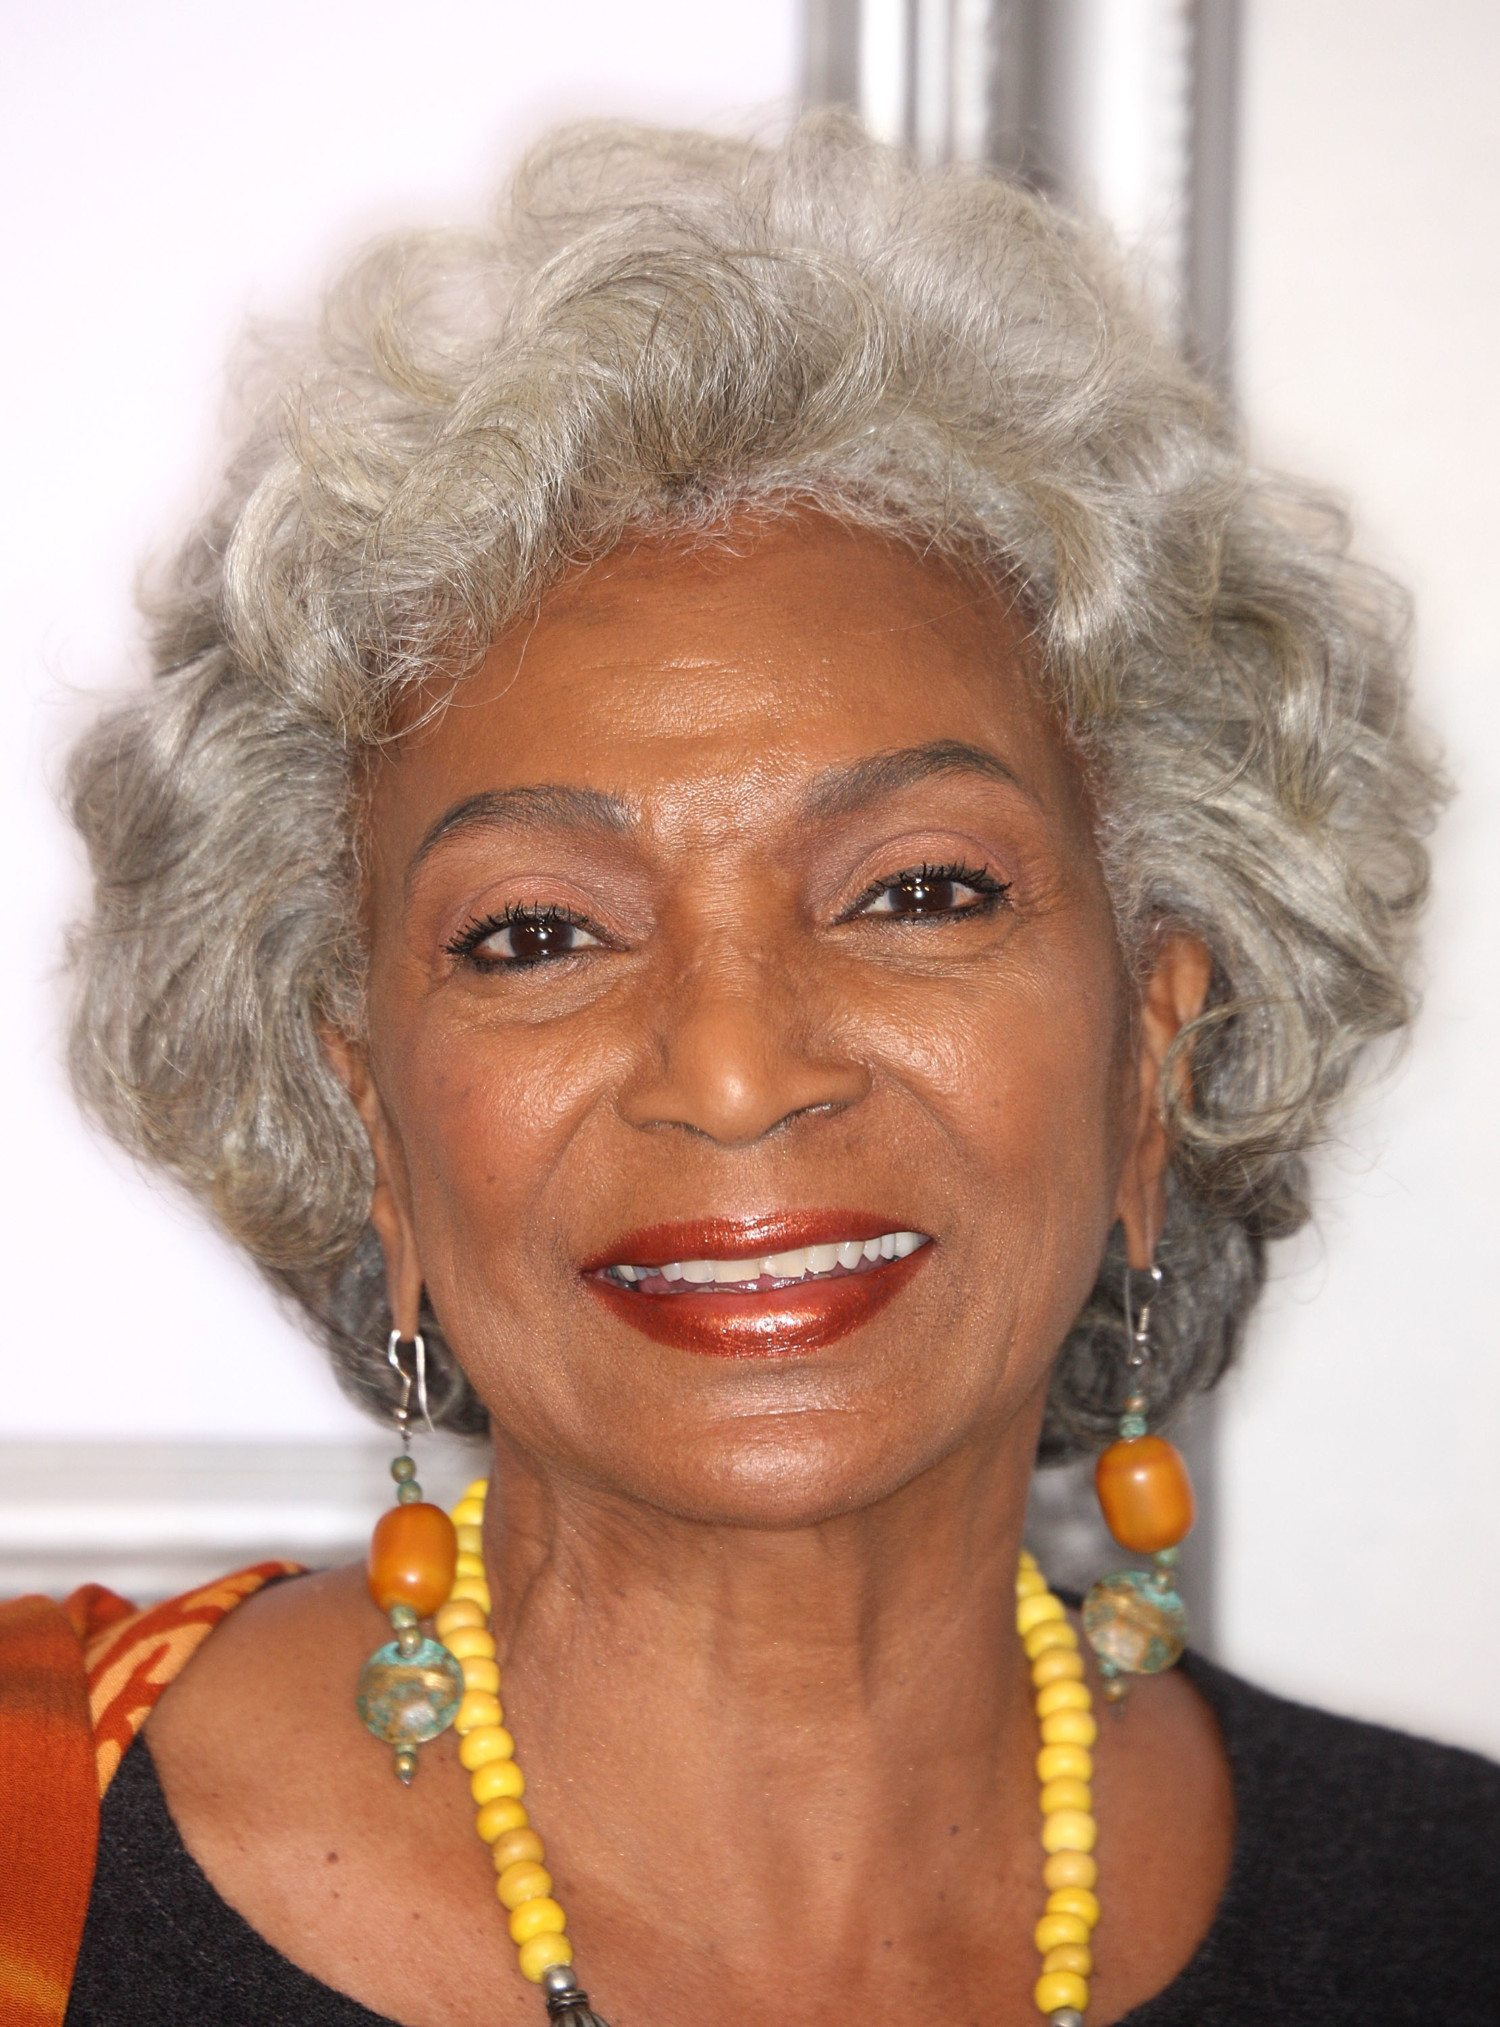 nichelle nichols portrait photo